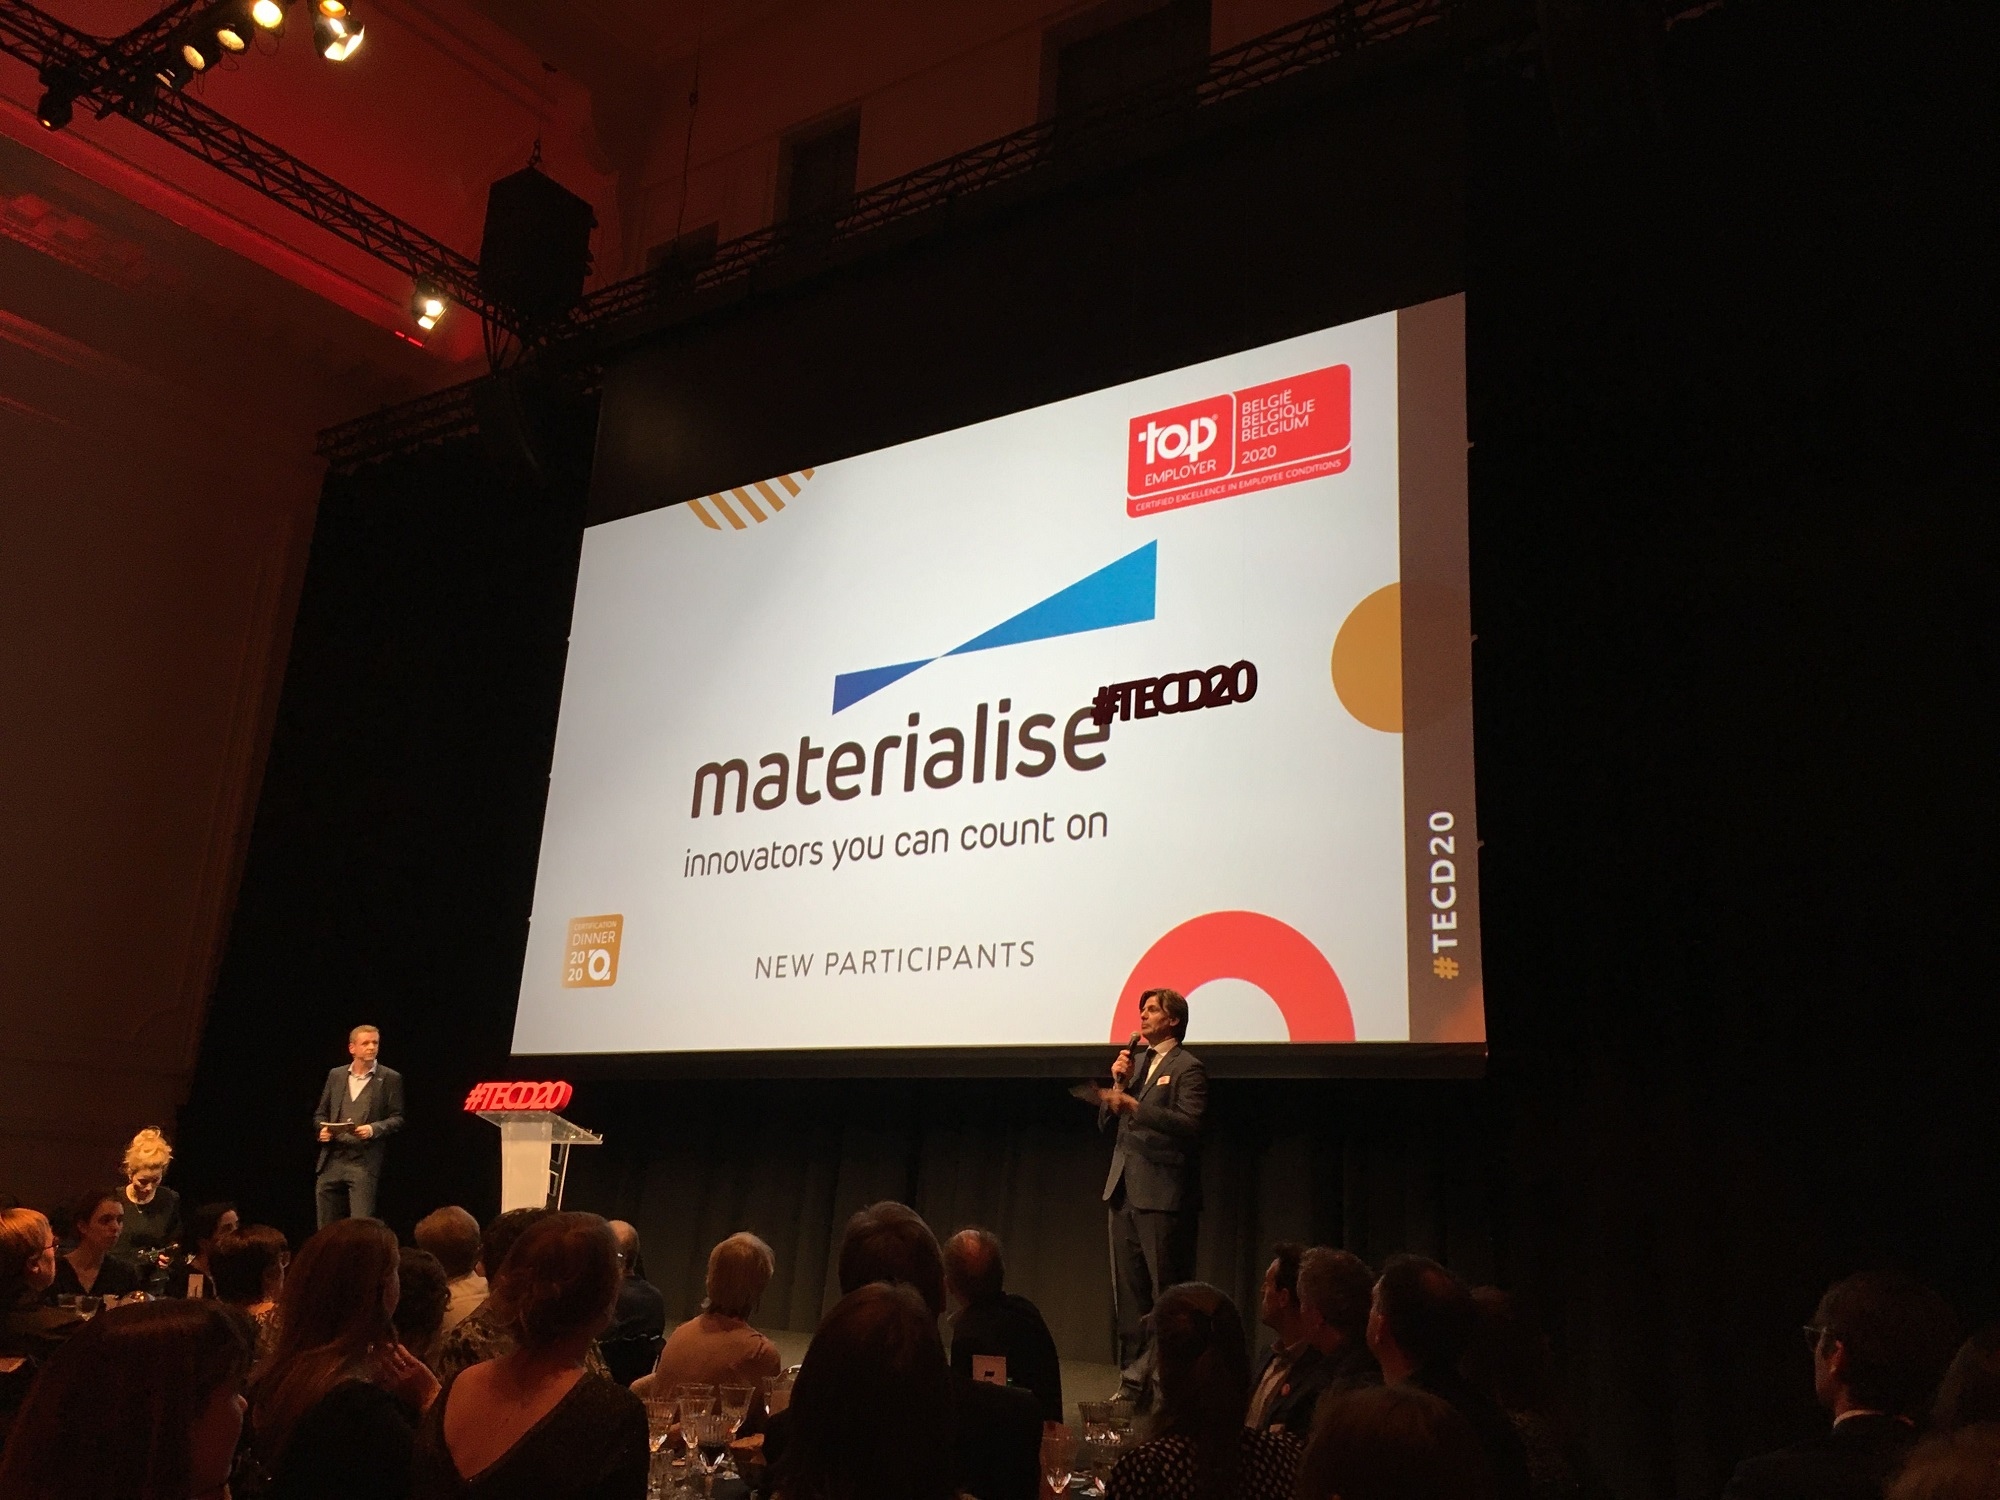 Materialise HR director accepting Materialise's Top Employer Belgium award